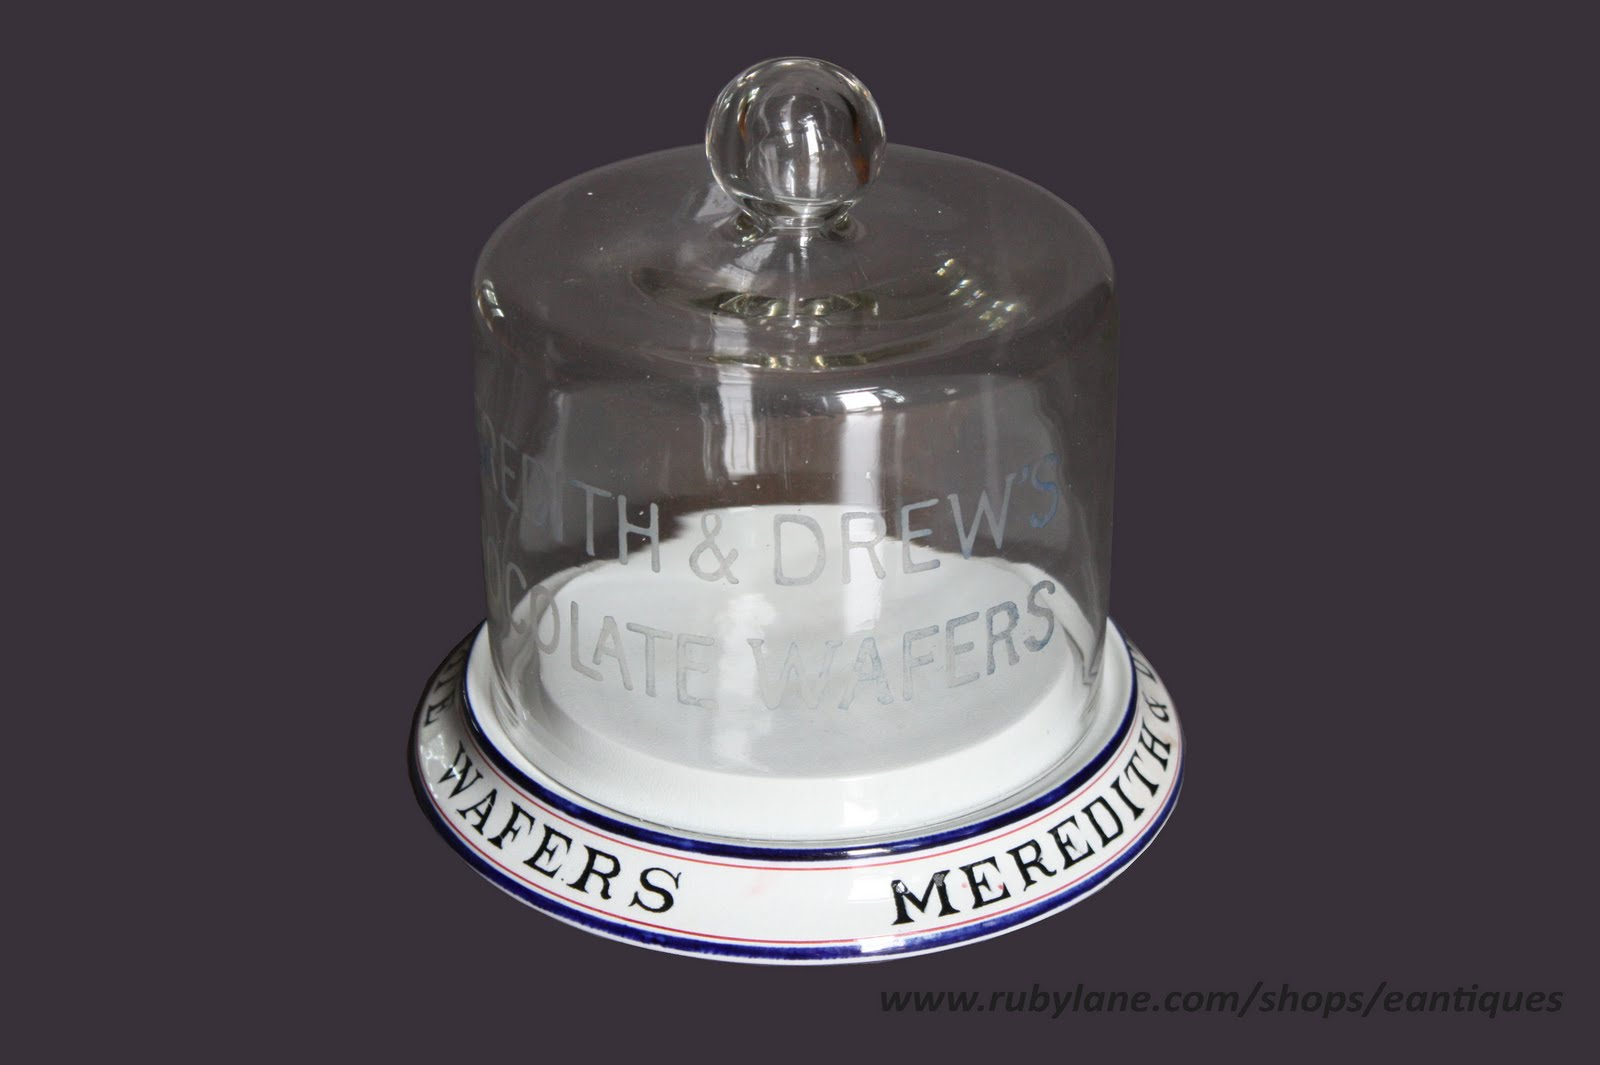 Eantiques Antique English Shop Display Stands Meredith